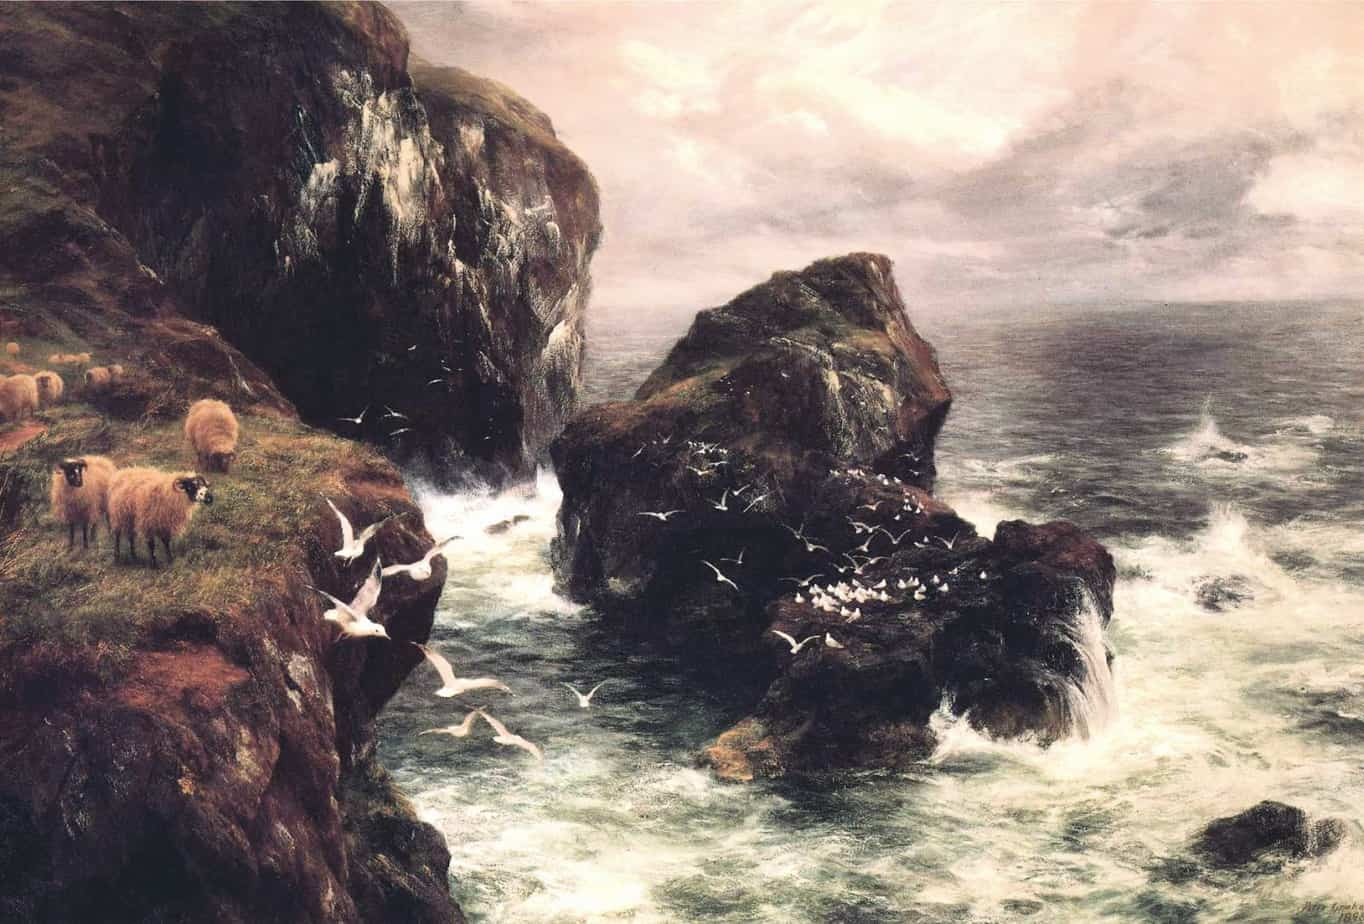 Peter Graham - The Grass Crown Headland of a Rocky Shore